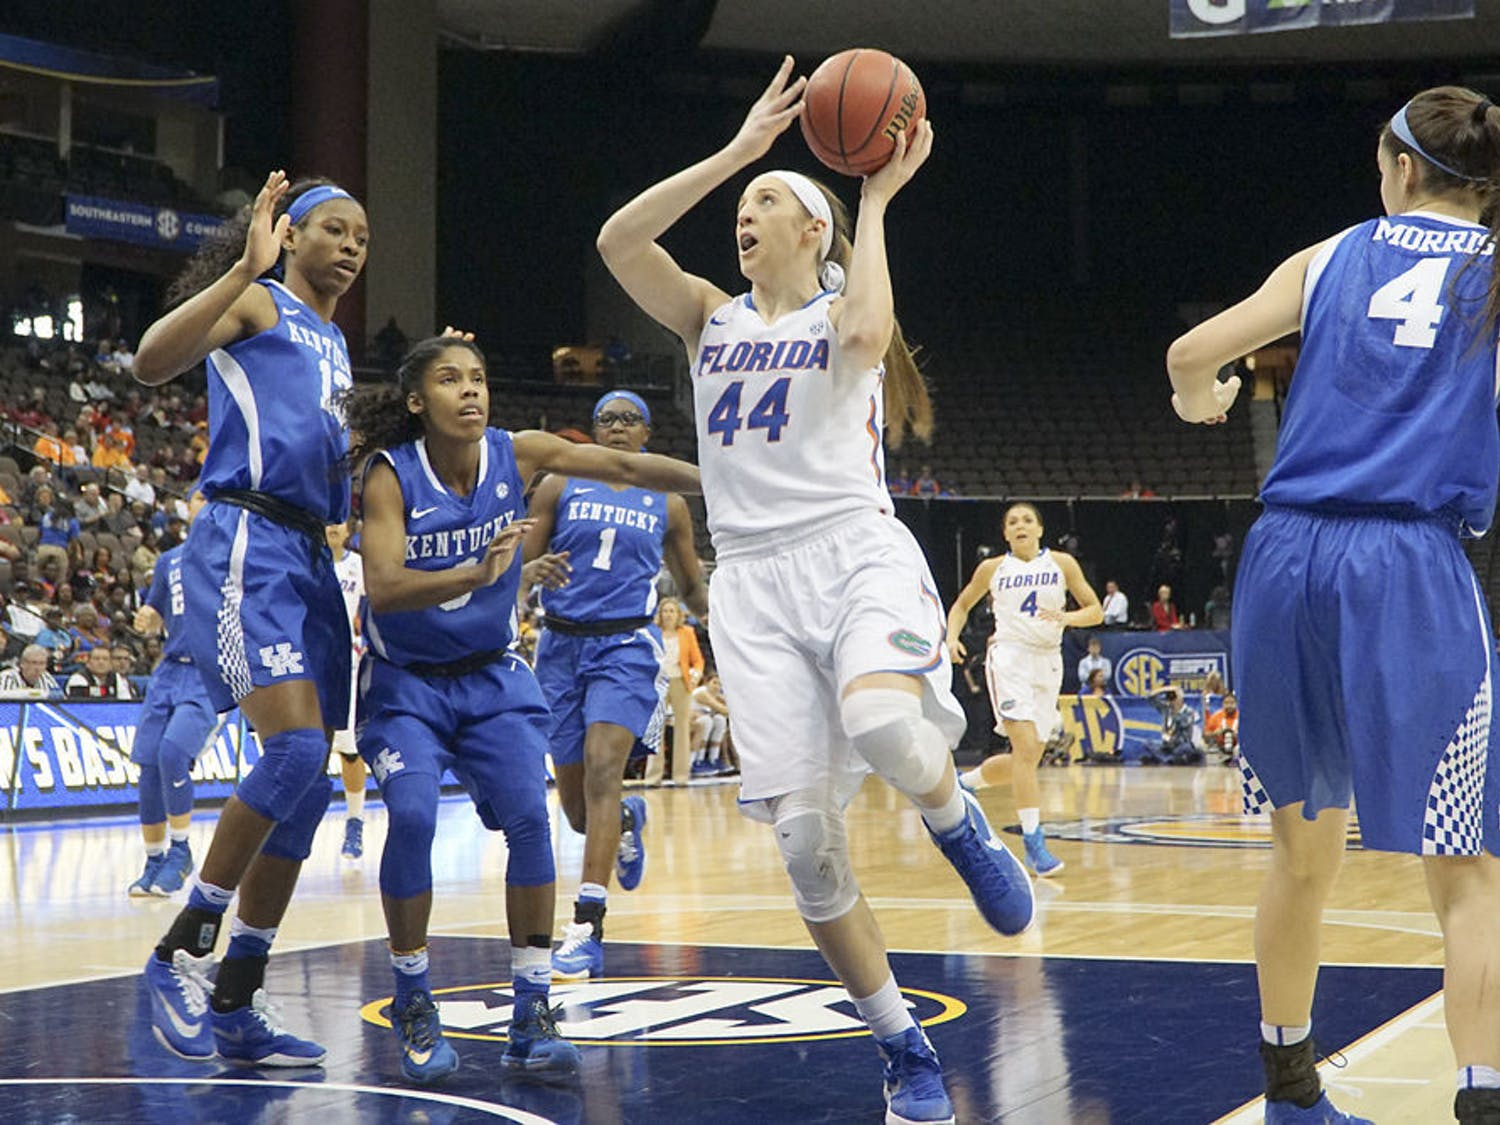 Florida forward Haley Lorenzen scored 18 points and pulled down 12 rebounds in Florida's 85-51 victory over Delaware State on Wednesday.